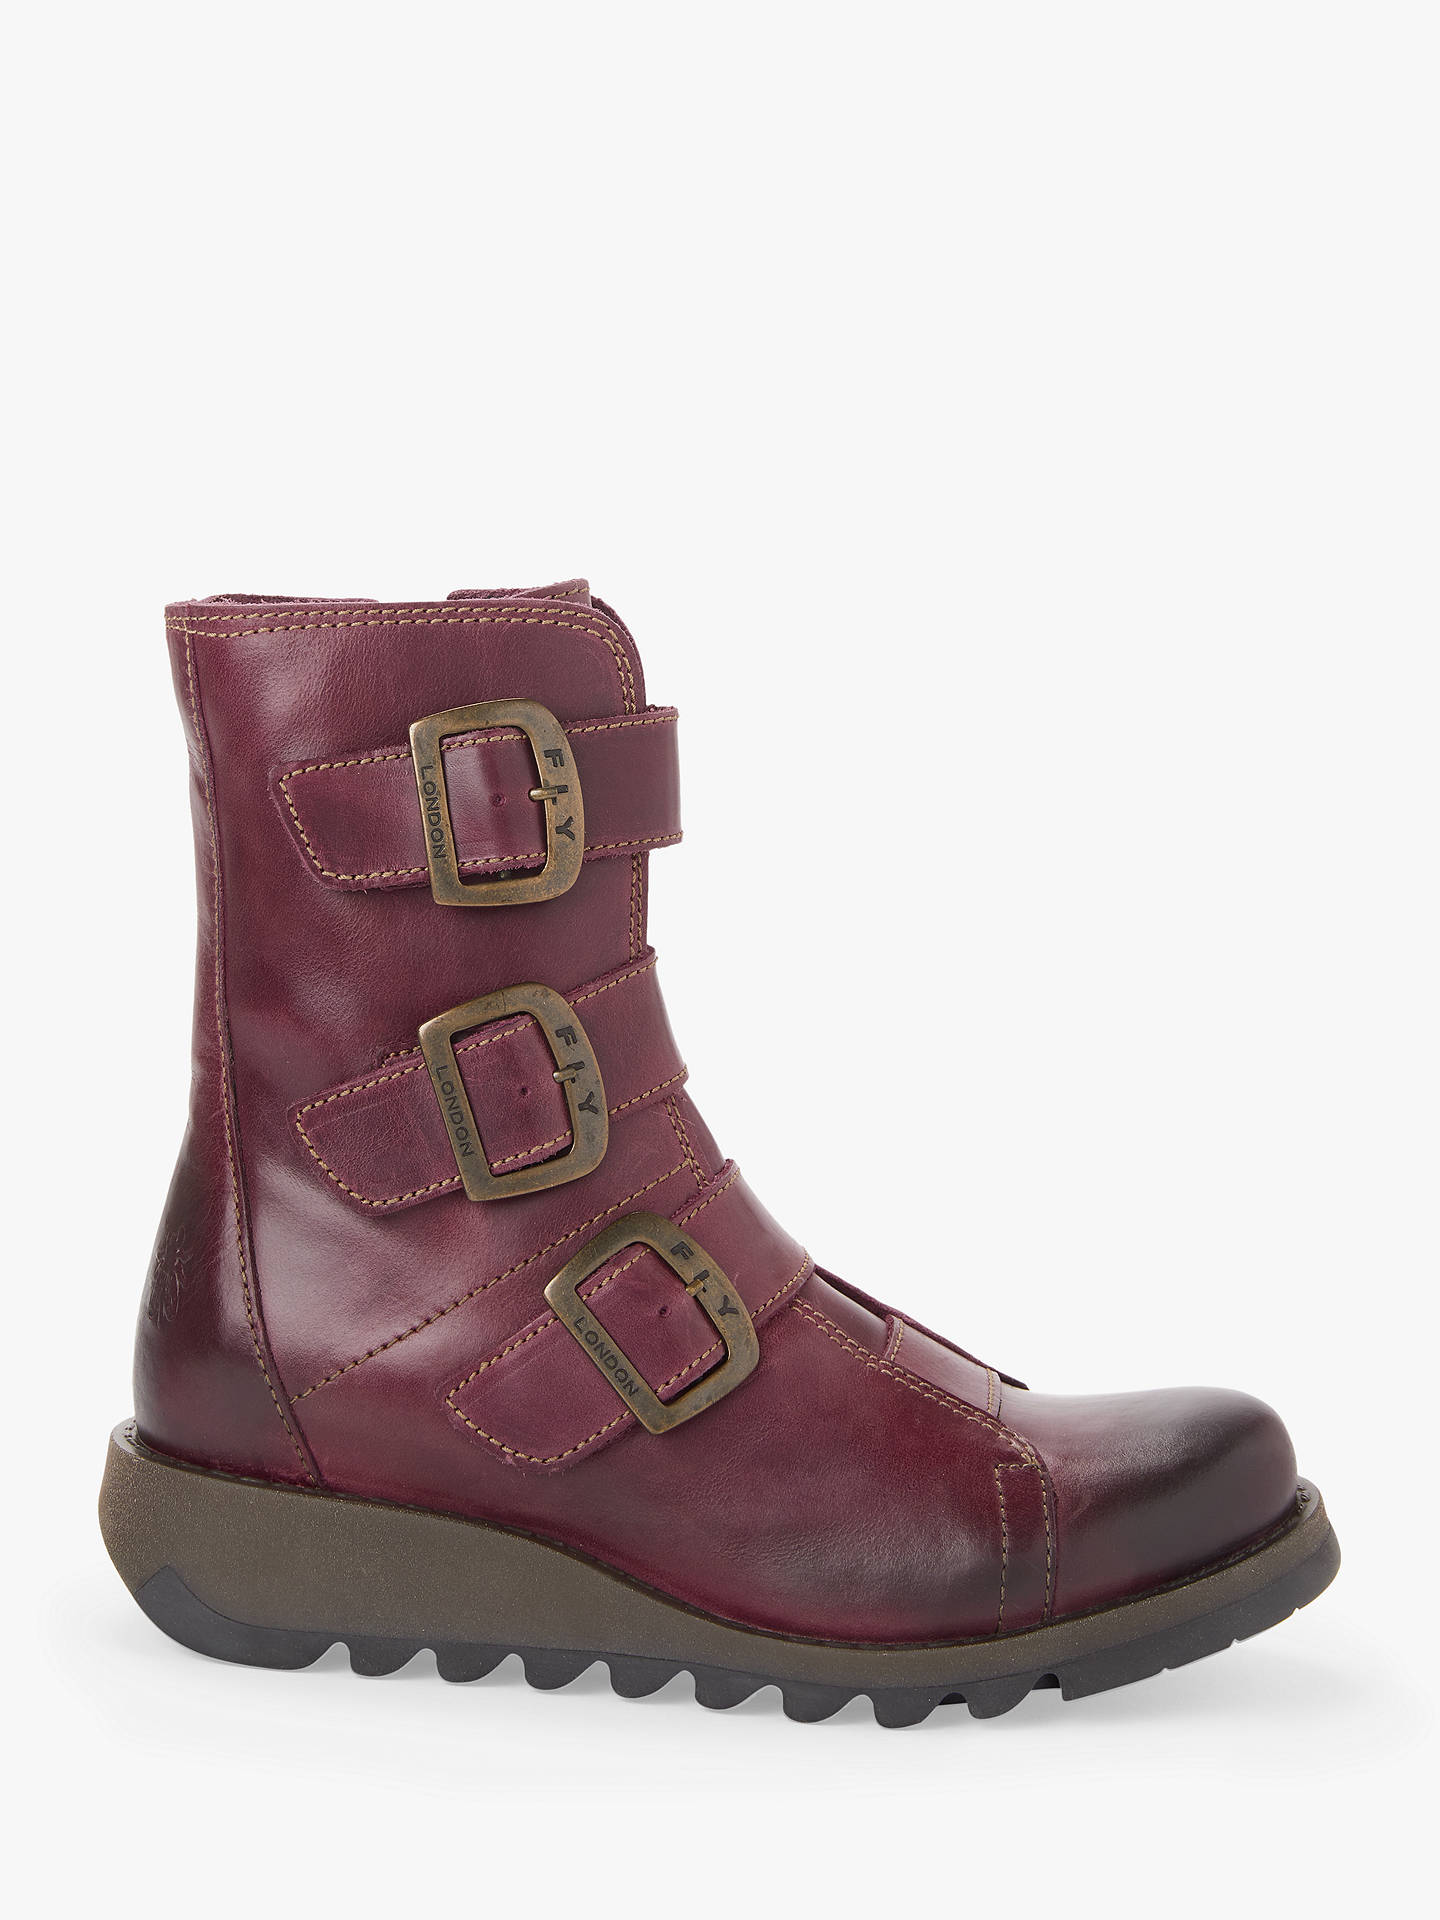 8bd5c27ba4f Fly London Scop Triple Buckle Ankle Boots at John Lewis & Partners